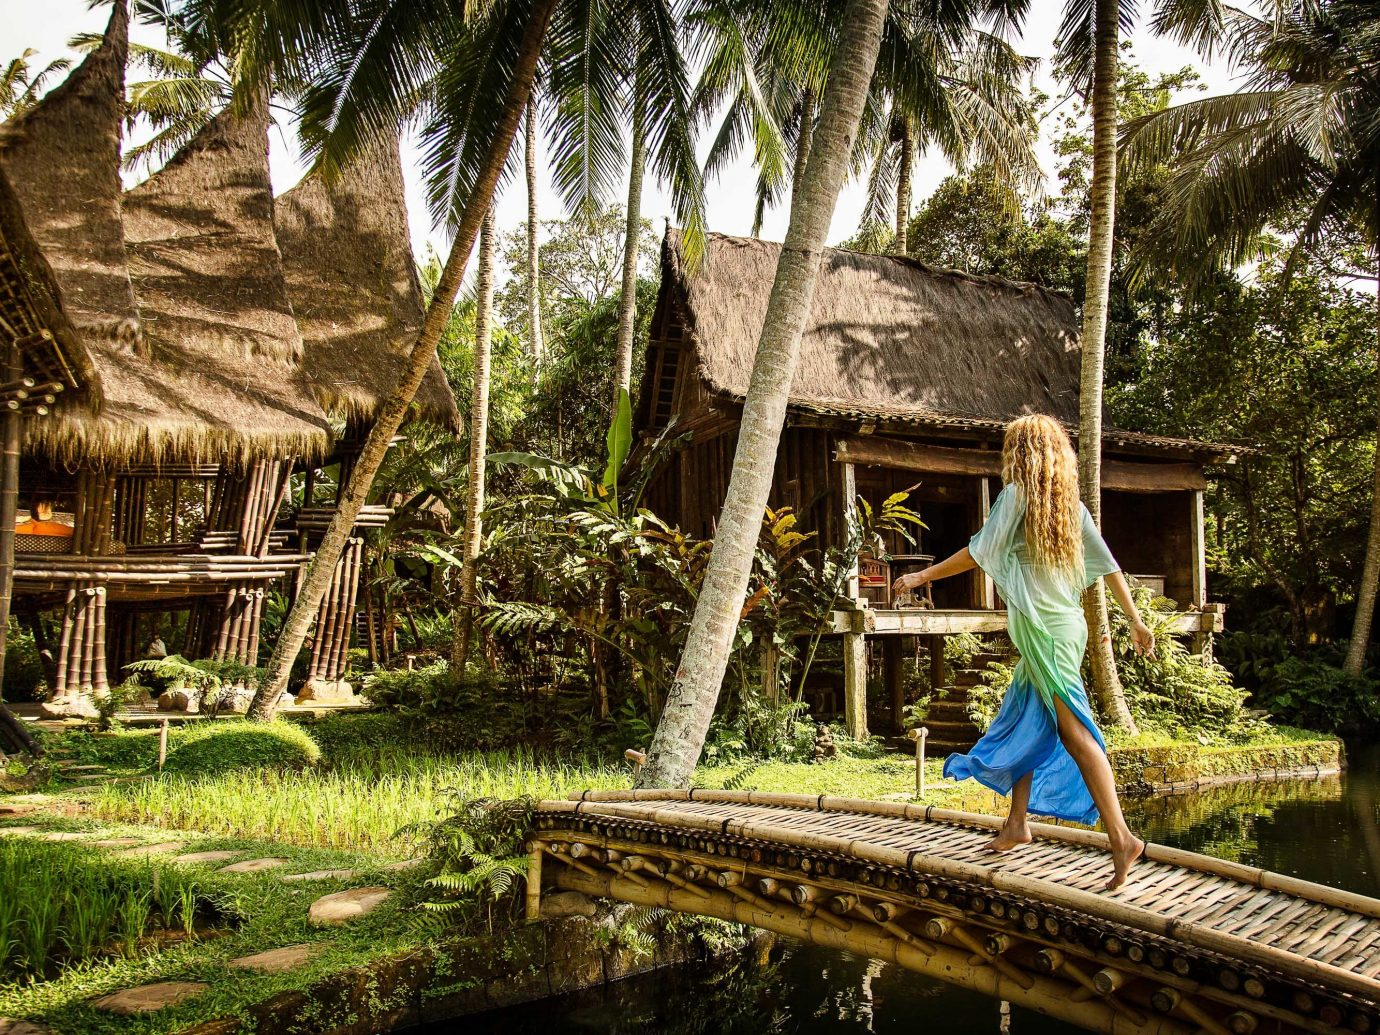 Boutique Hotels Hotels Nature water tree plant arecales leisure Jungle palm tree rainforest reflection tourism Resort landscape Forest recreation outdoor structure bayou